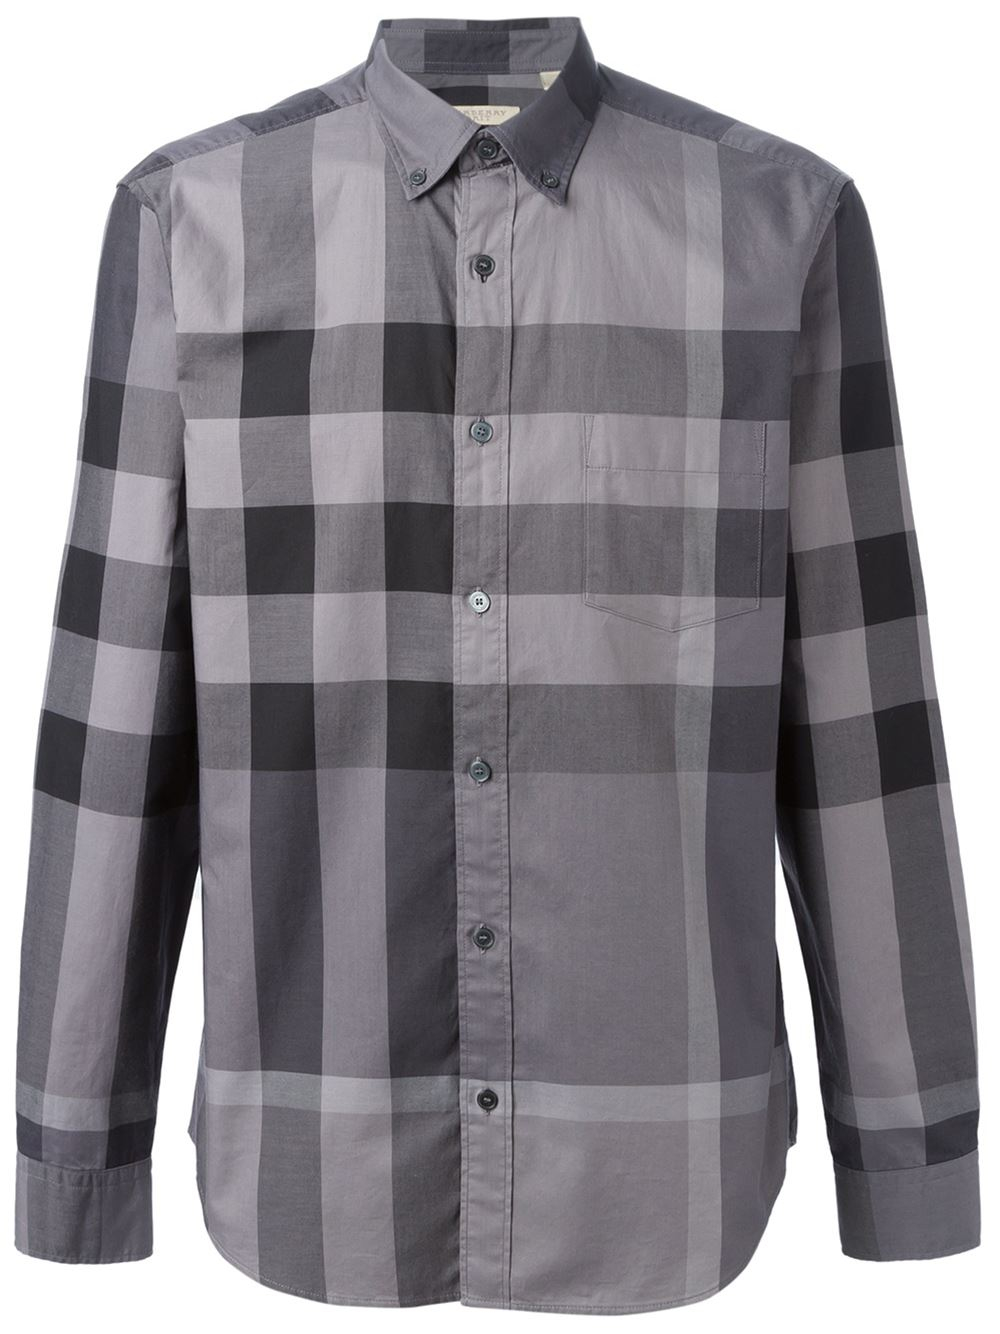 Burberry brit 39 fred 39 shirt in gray for men grey lyst for Where are burberry shirts made